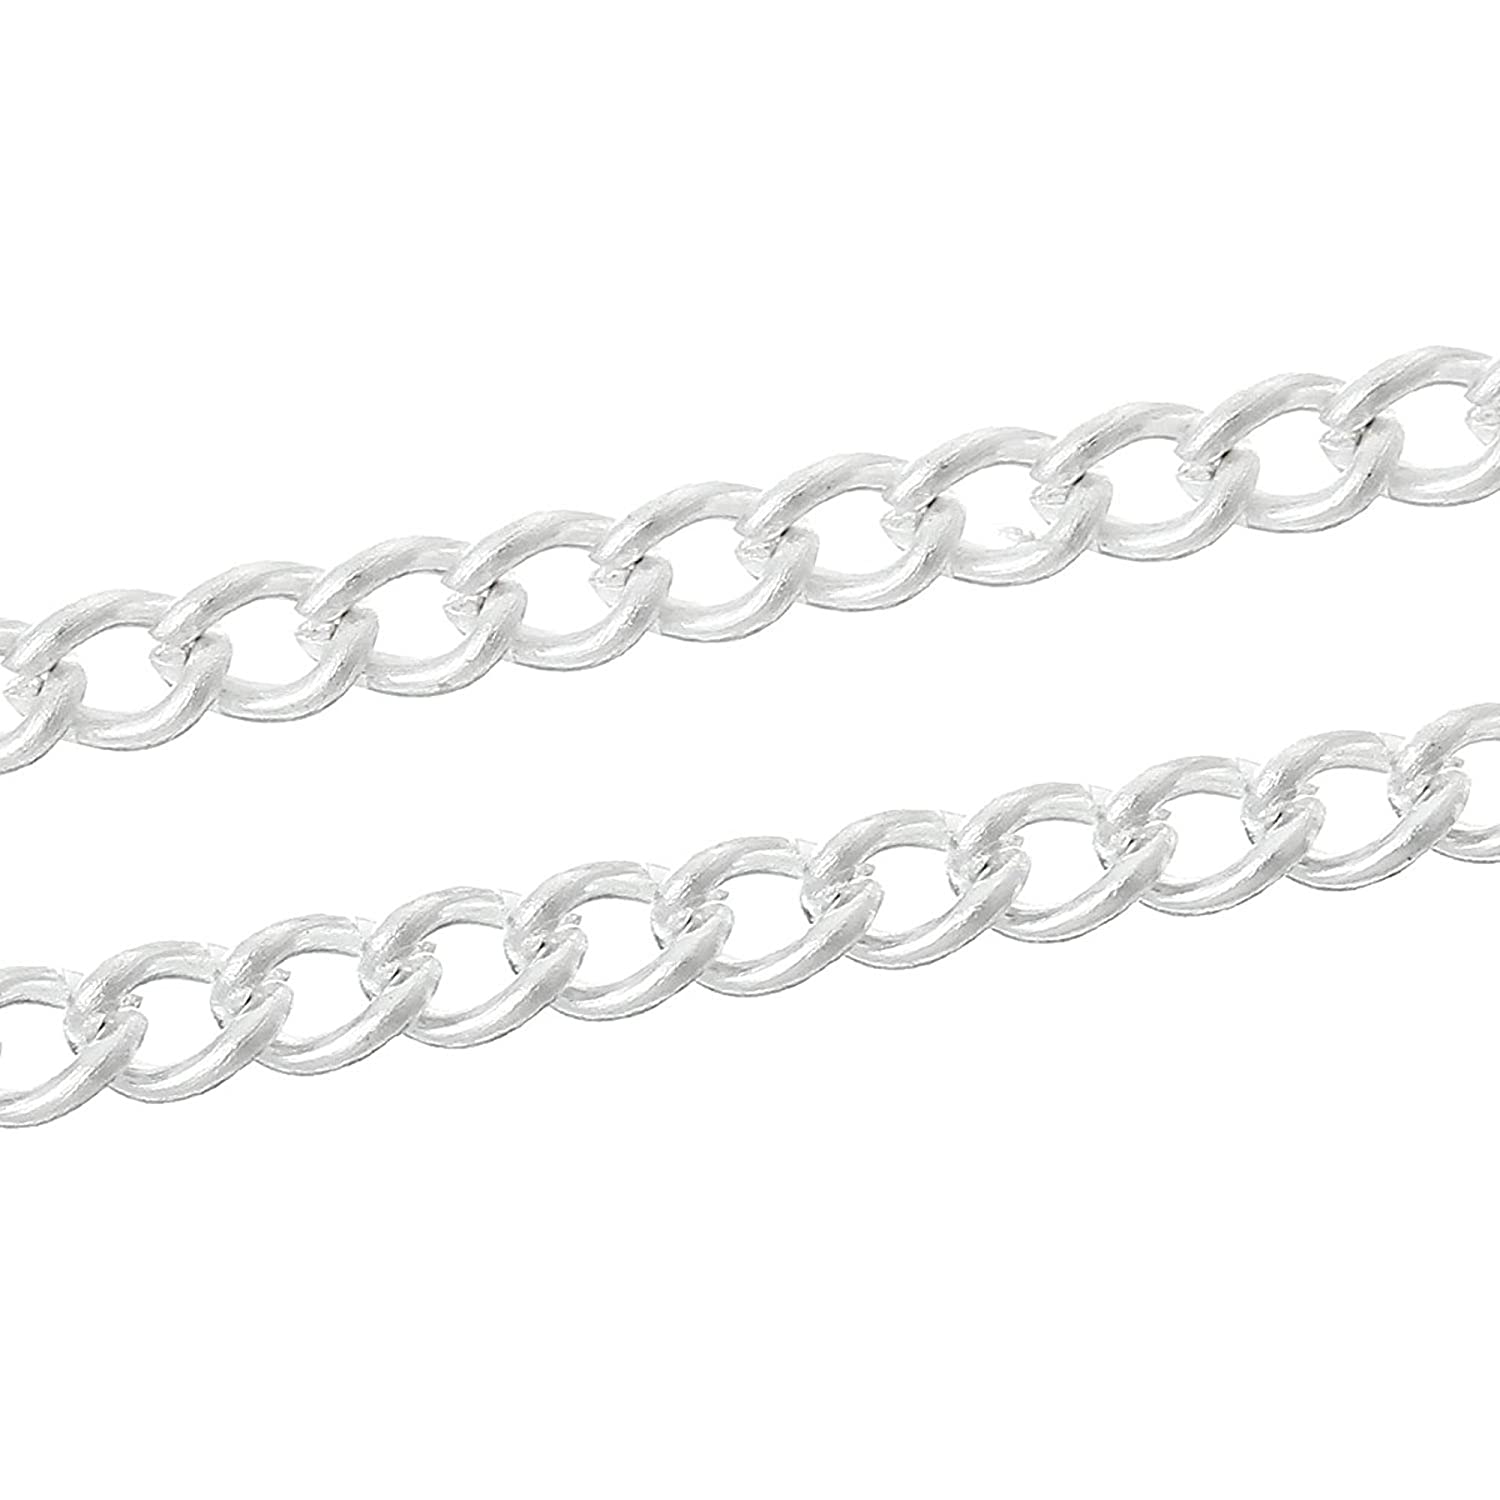 4 x Metres 3mm x 2mm Silver Plated Curb Chain Craft Jewellery Making Beading Arts Crafts Charm Buddy Charm Buddy ® REF: #FDN.61.